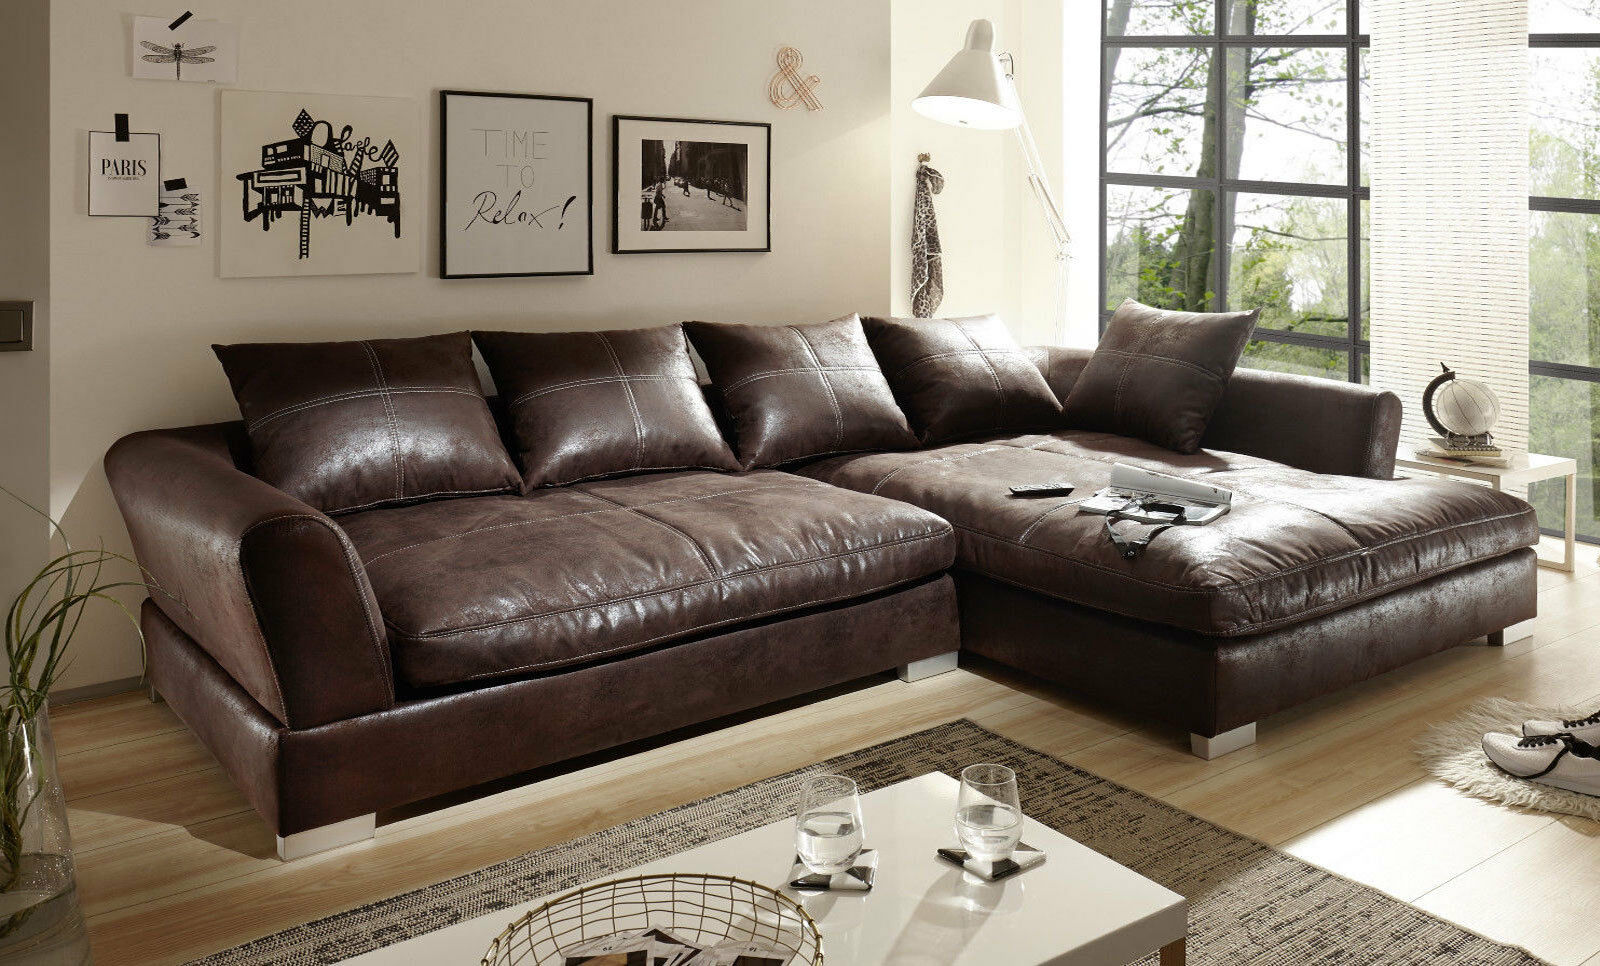 Full Size of Design Couchgarnitur Braun Sofa K Leder Eck Wohnlandschaft L Mit Schlaffunktion Poco Big Petrol Kolonialstil Hay Mags Inhofer 3 Sitzer Relaxfunktion In Form Sofa Big Sofa Braun